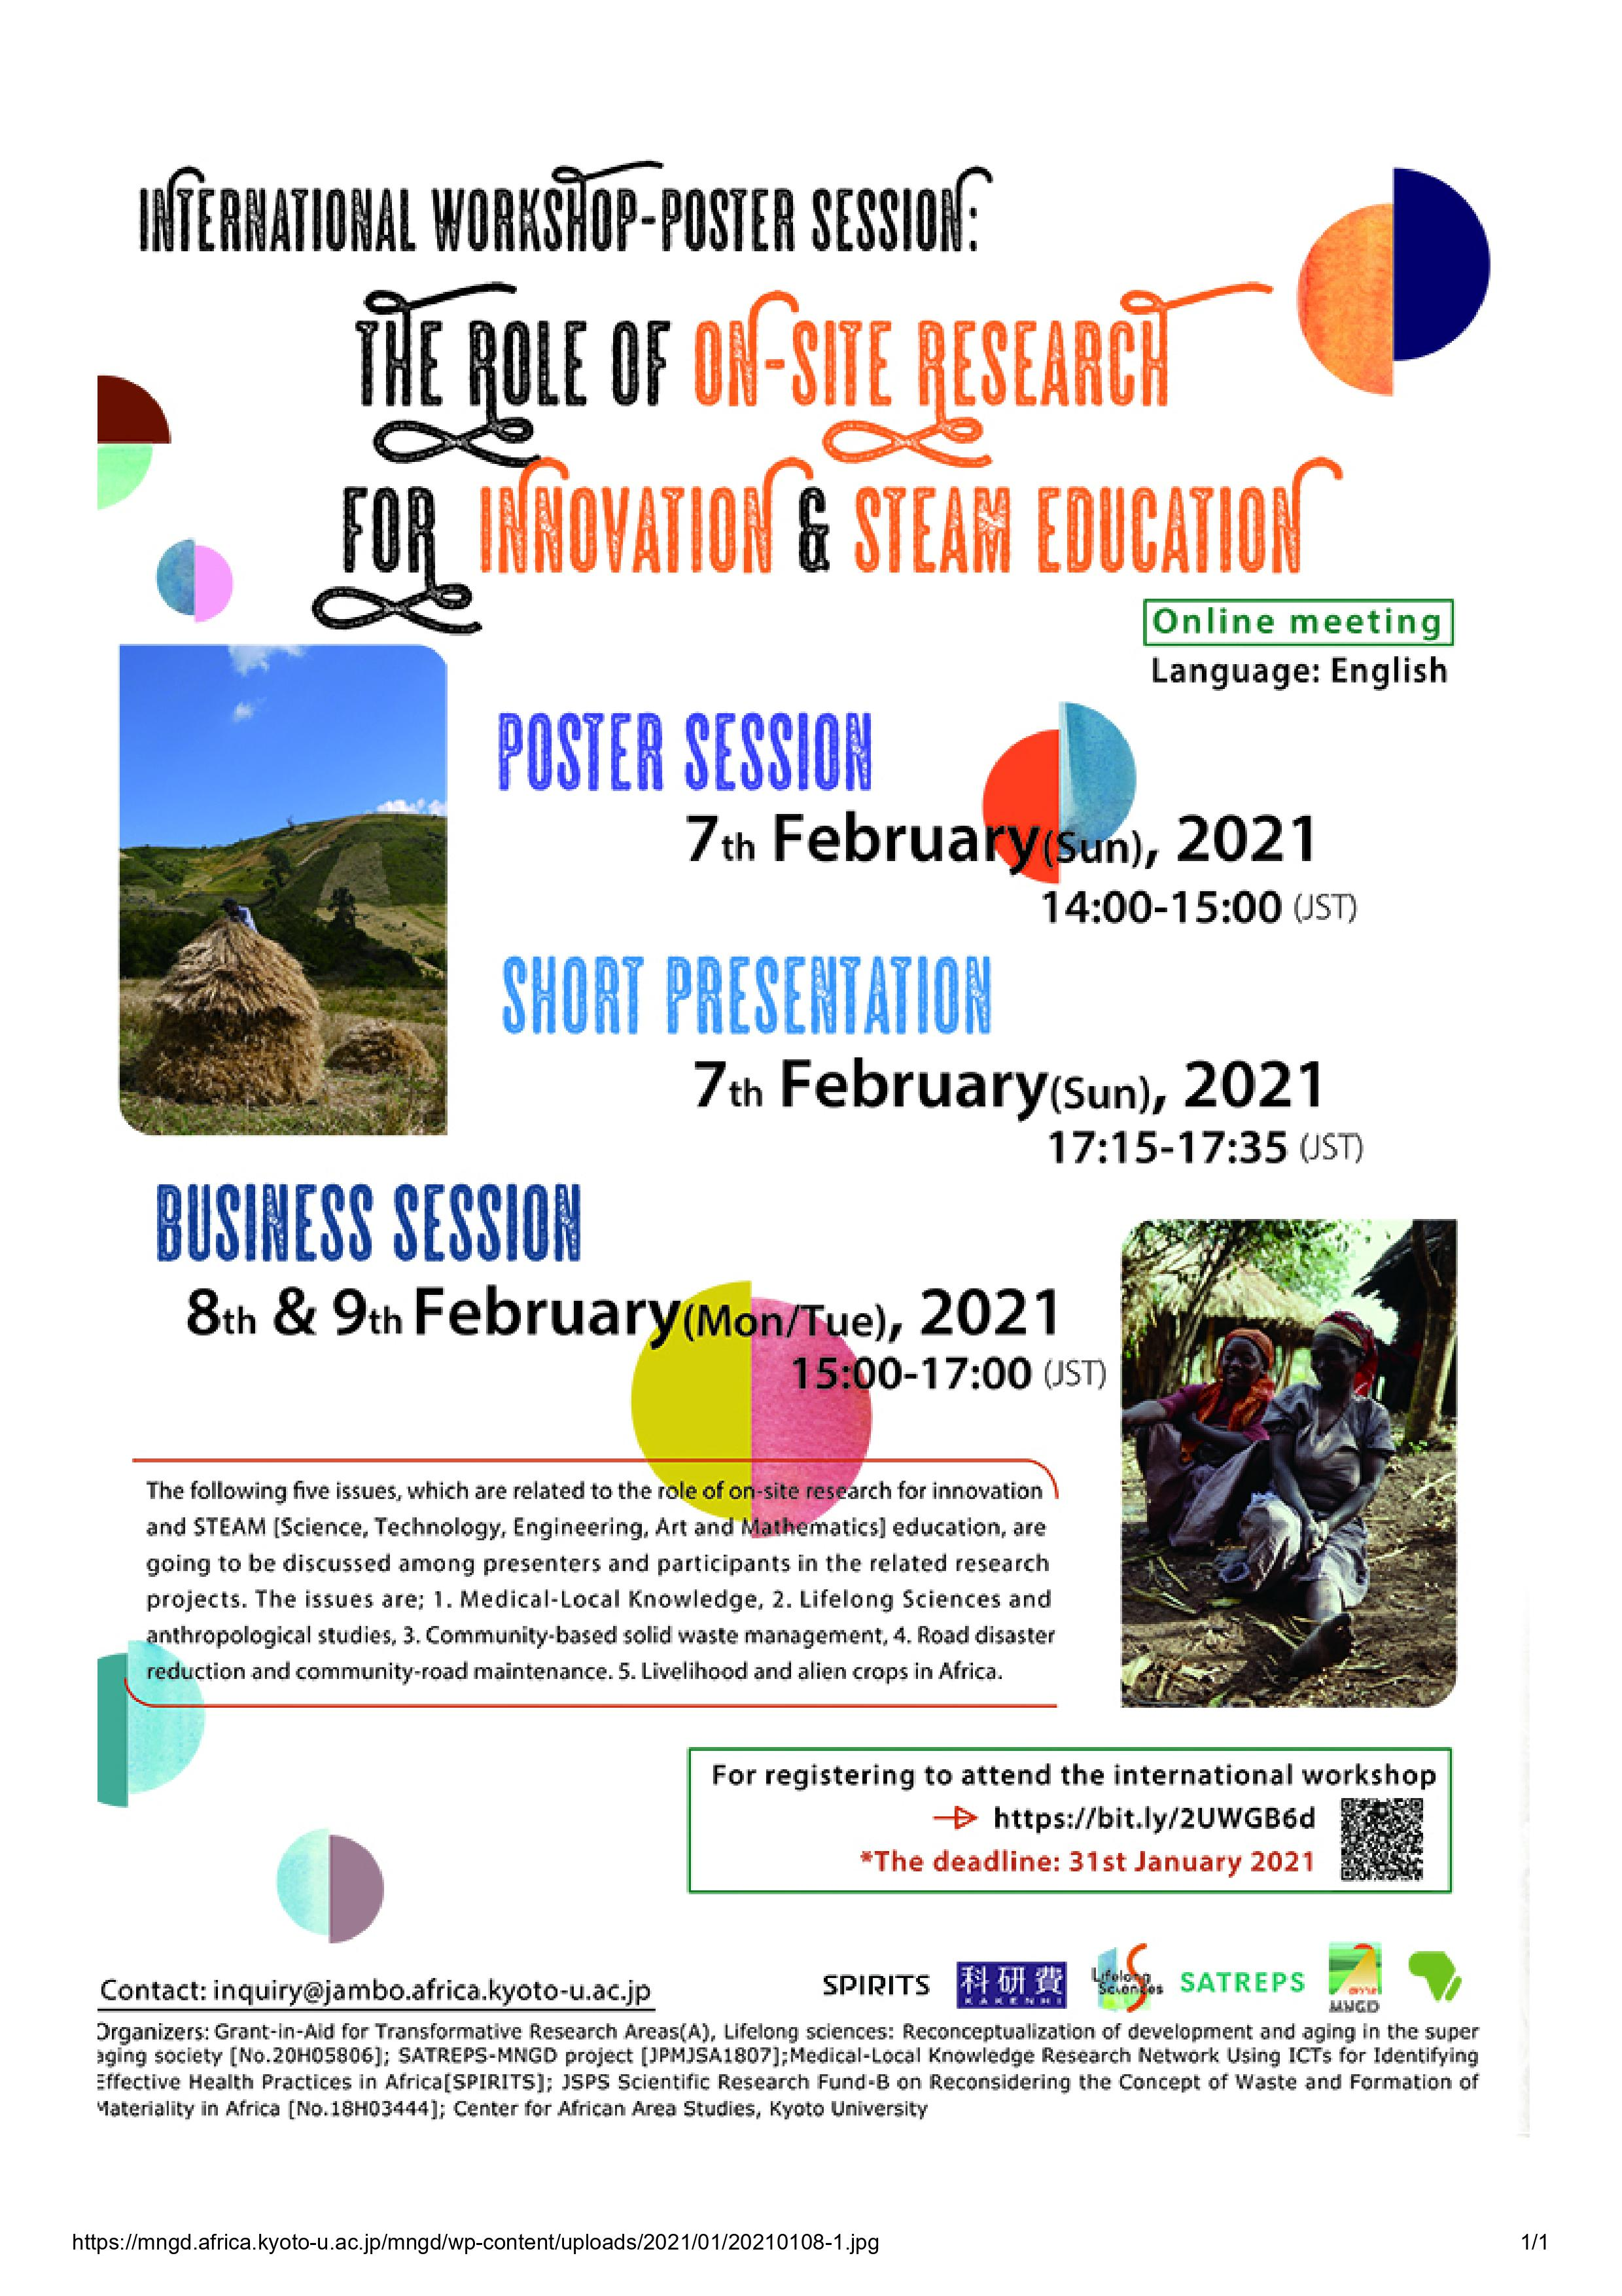 International Workshop-Poster Session: The Role of On-site Research for Innovation & Steam Education